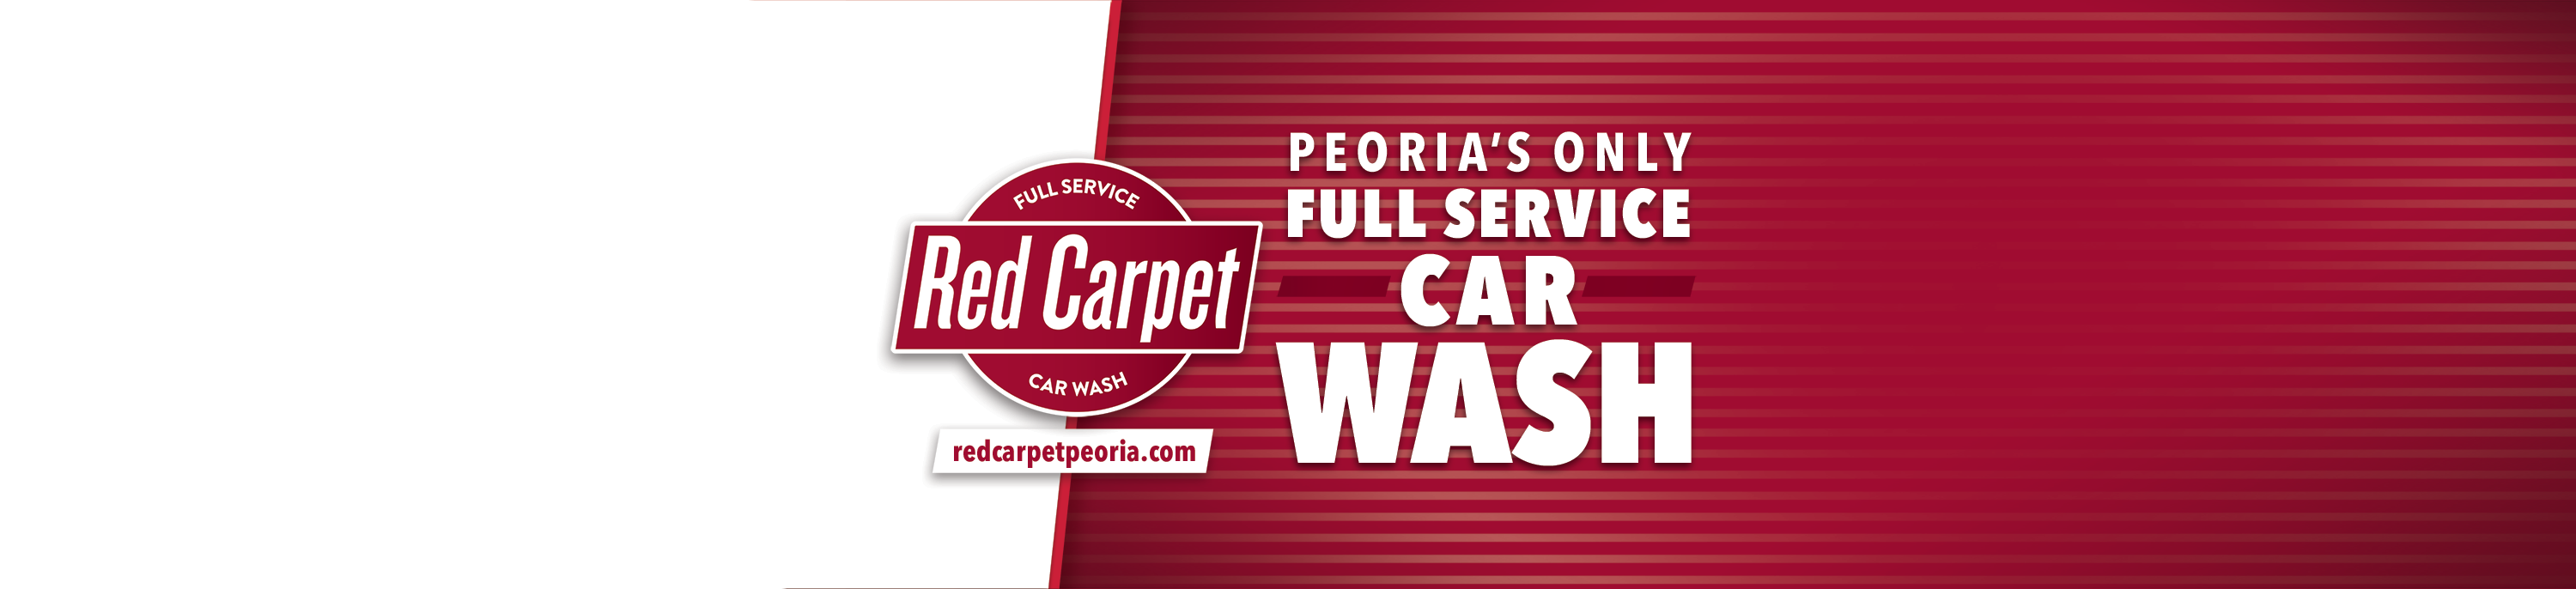 Peoria's Only Full Service Car Wash